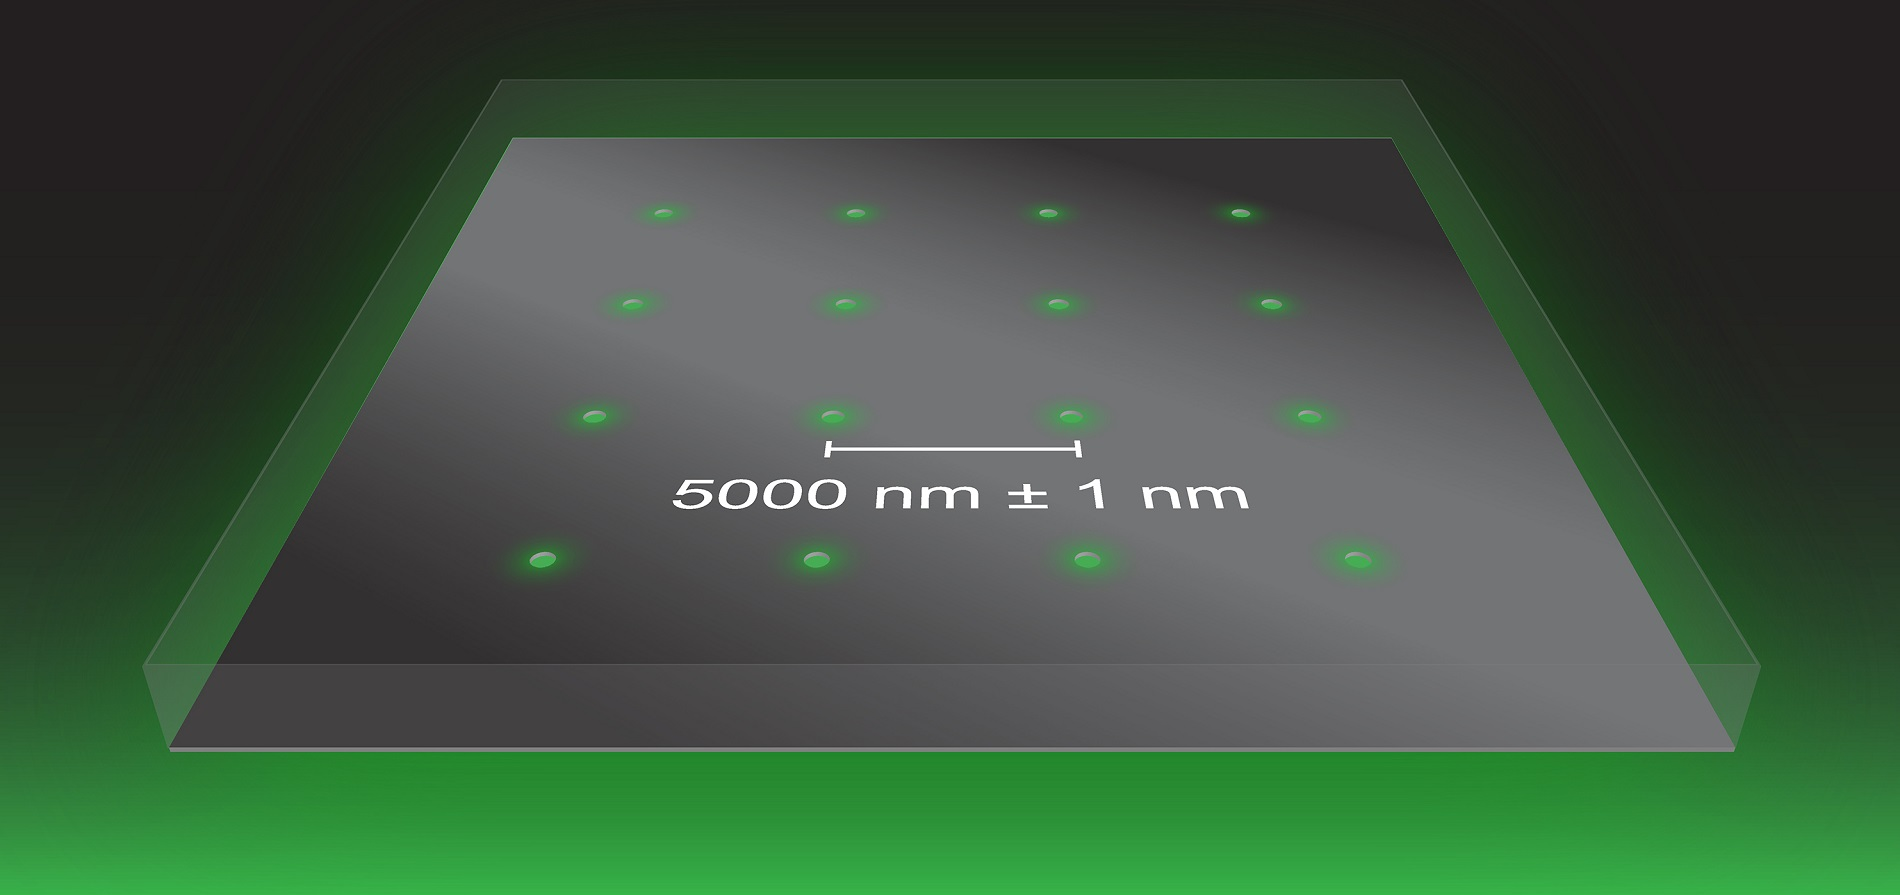 Nanoscale Apertures for Improving Optical Microscope Accuracy